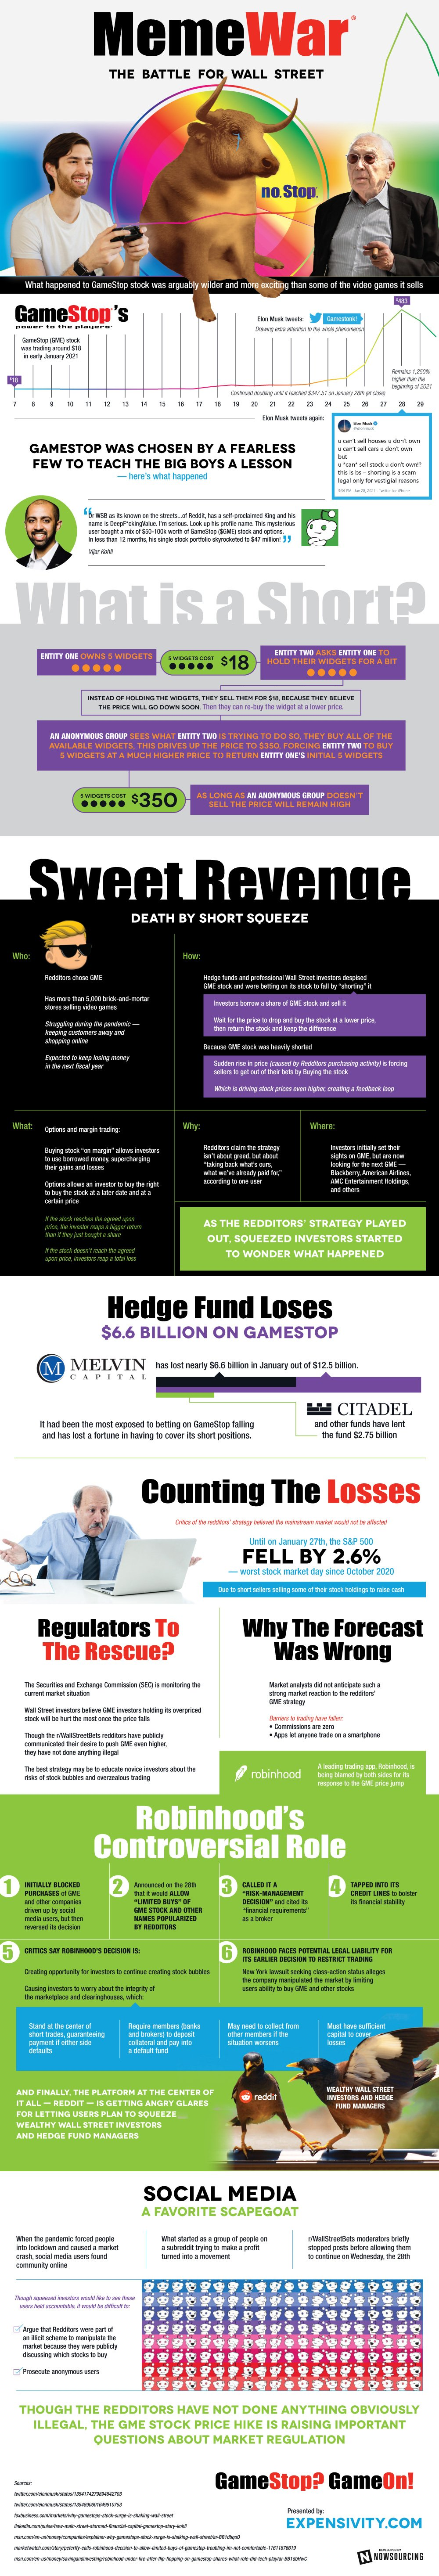 How GameStop Stole the Market